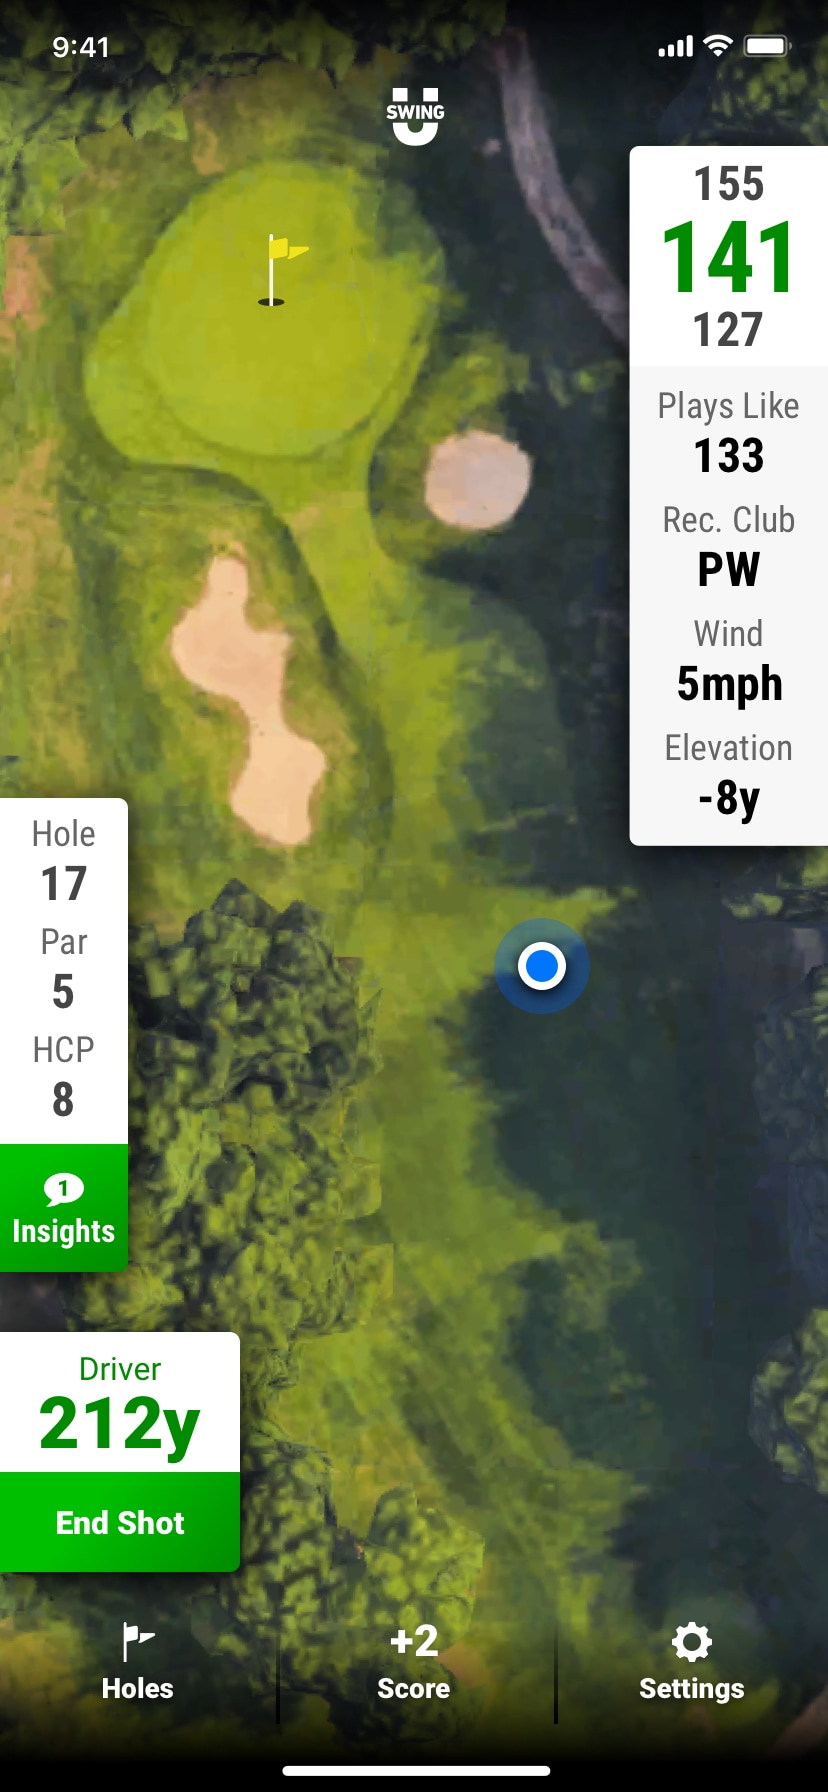 SwingU - Screenshot - SwingU Golf Tracking Shots